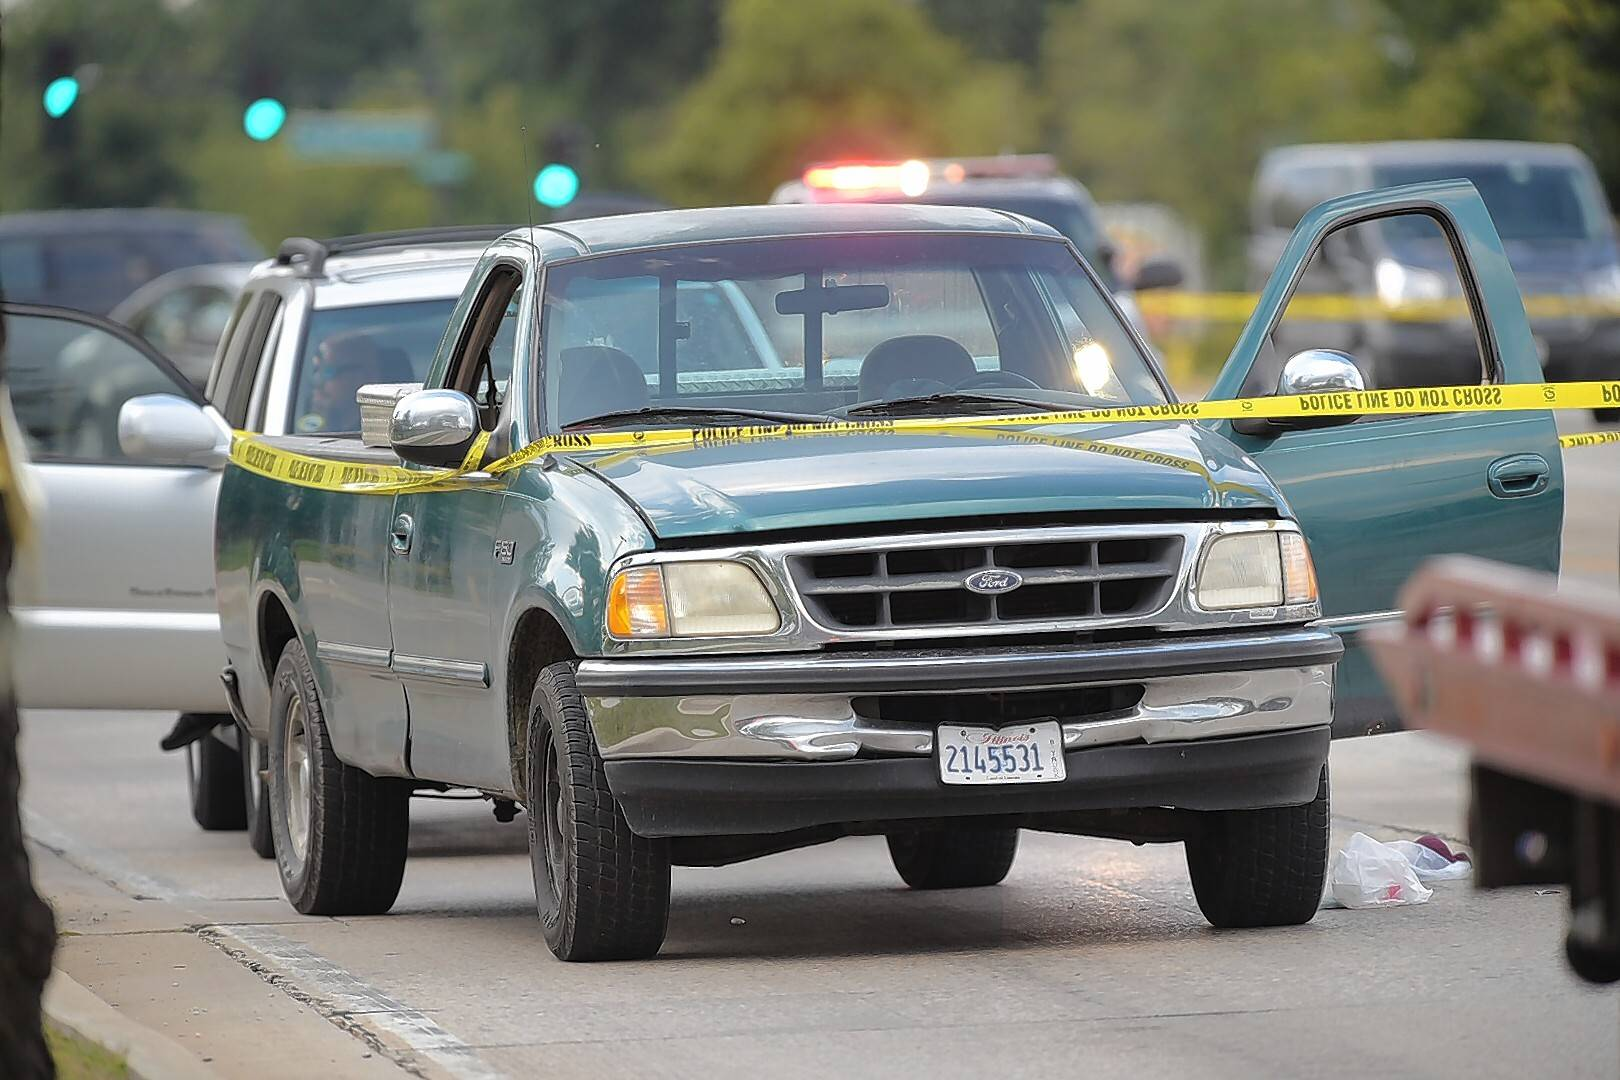 Mark Black/mblack@dailyherald.comYellow tape connected a pickup truck, an SUV and a police vehicle on Roselle Road near Wise Road in Schaumburg, as investigators worked the scene of a shooting Monday.